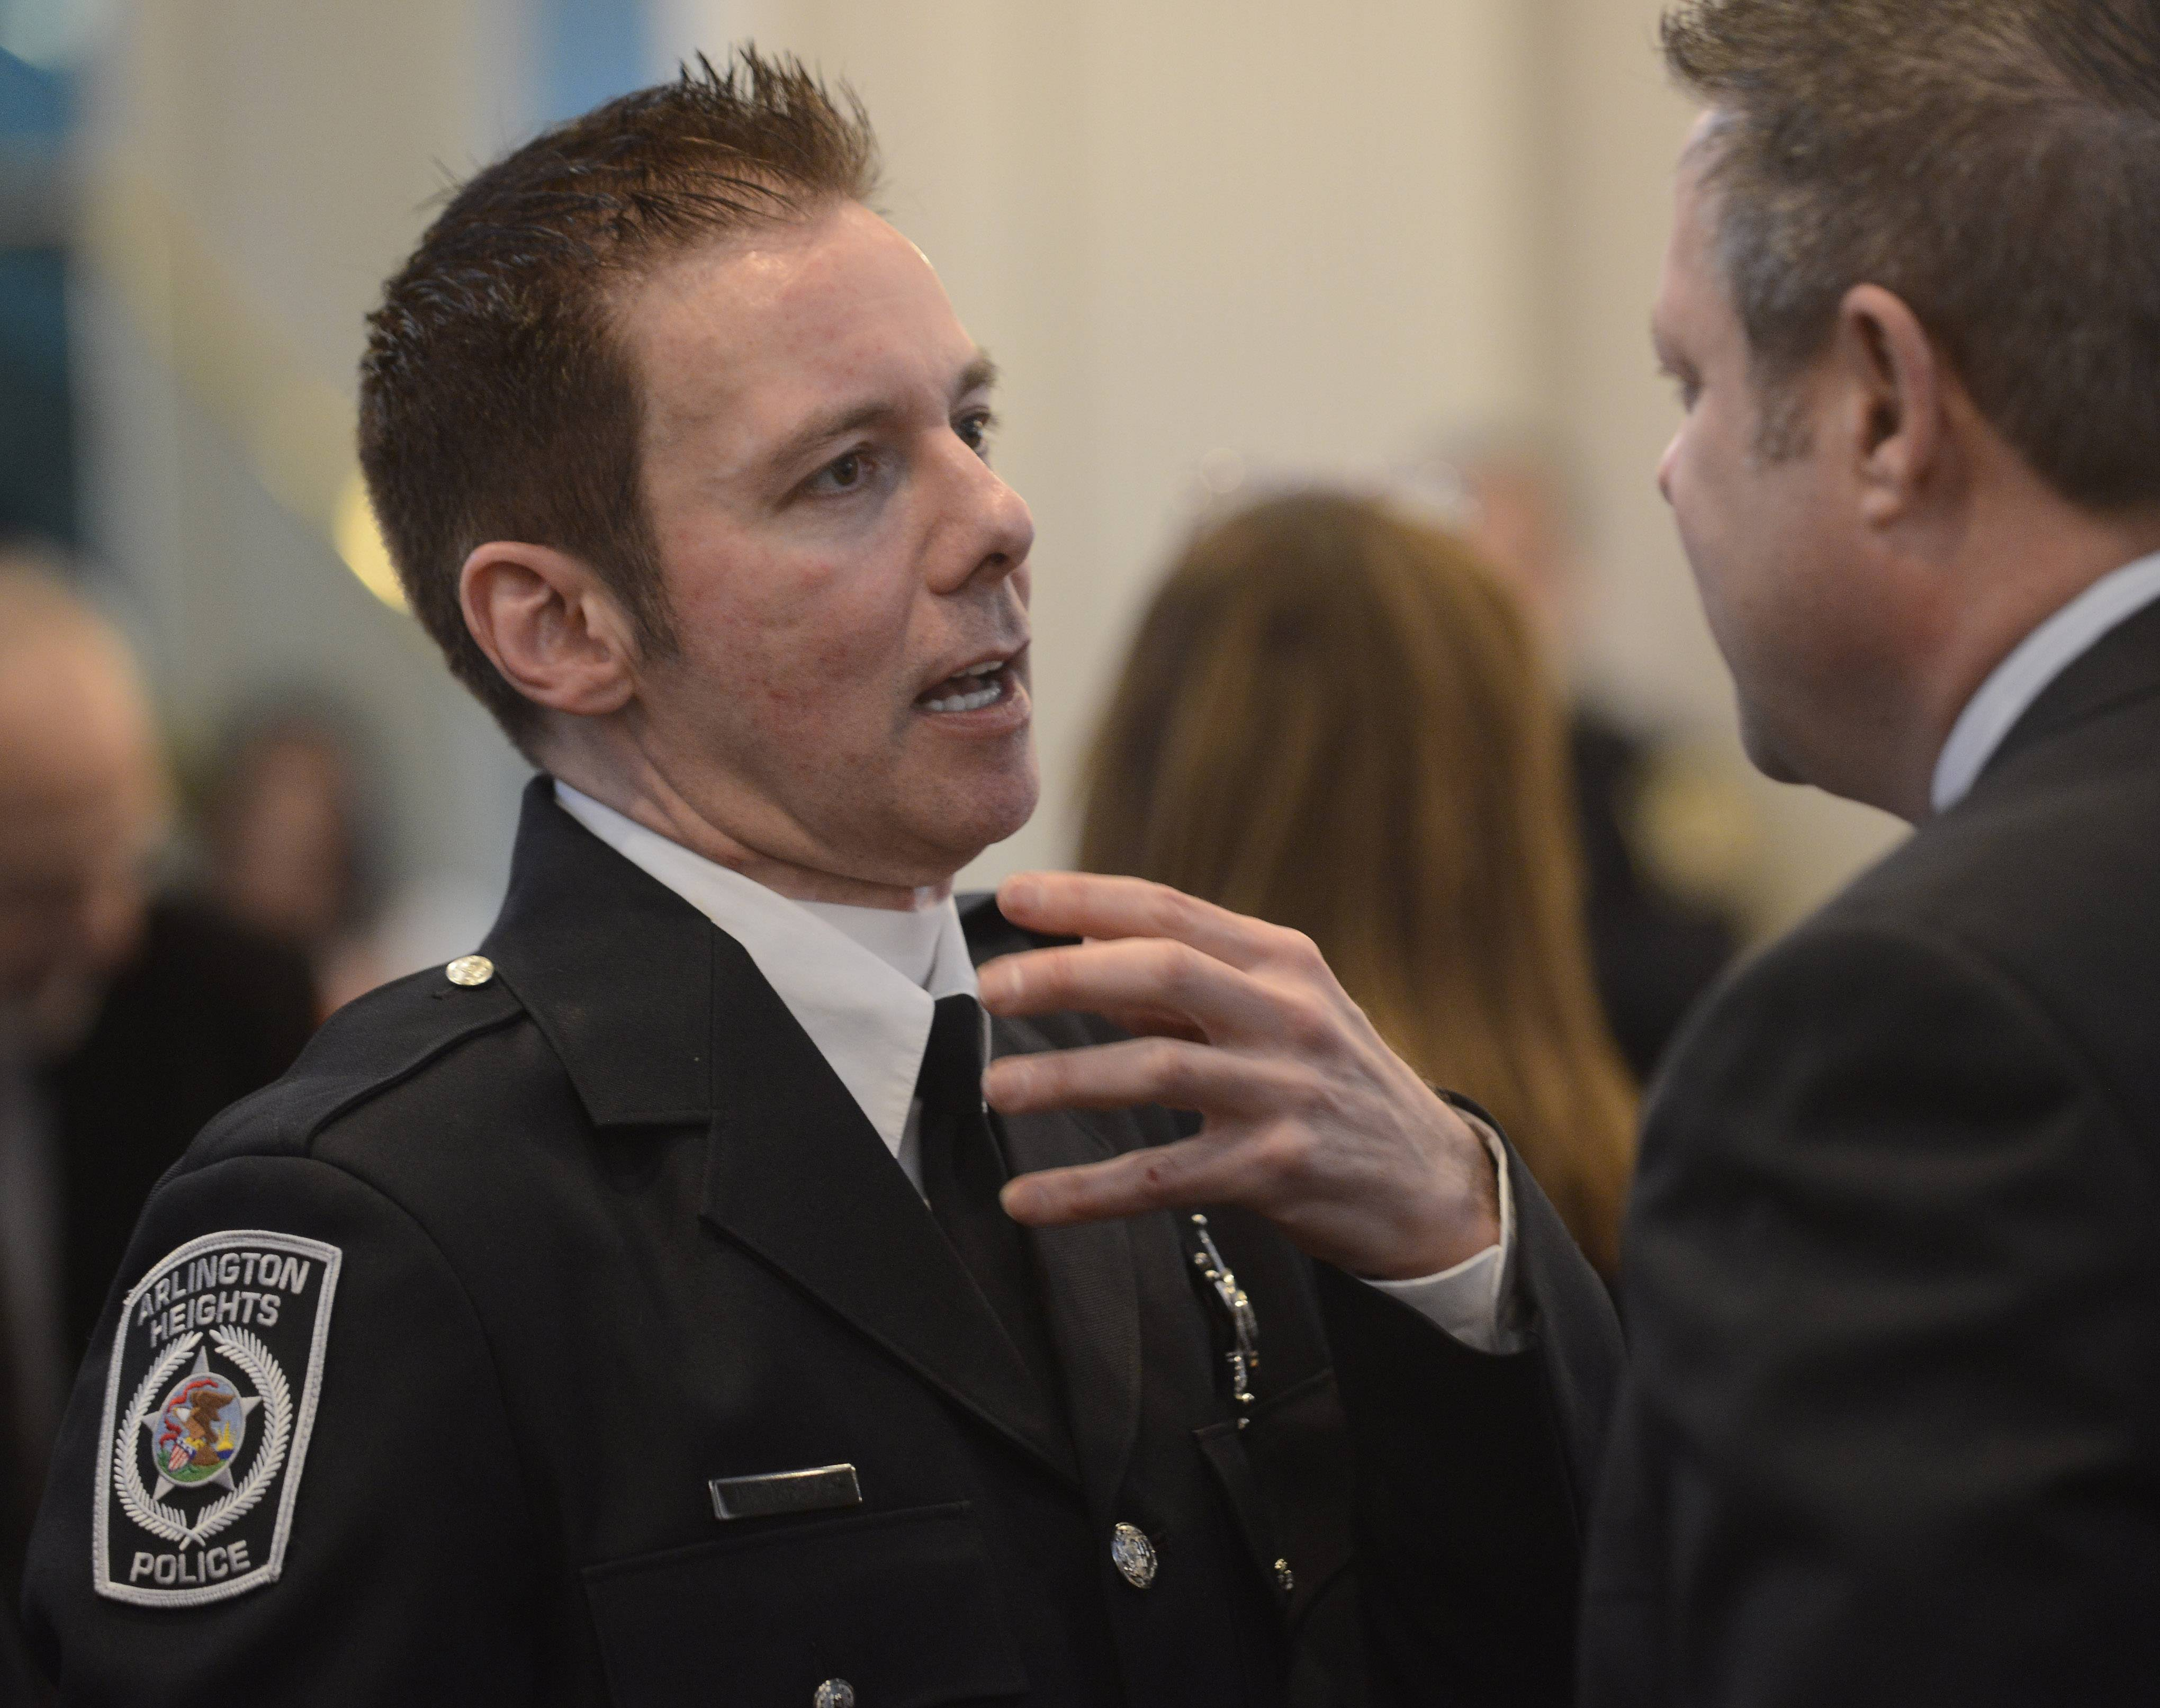 Arlington Heights police officer Michael McEvoy talks with Arlington Heights Trustee Tom Glasgow before the ceremony.